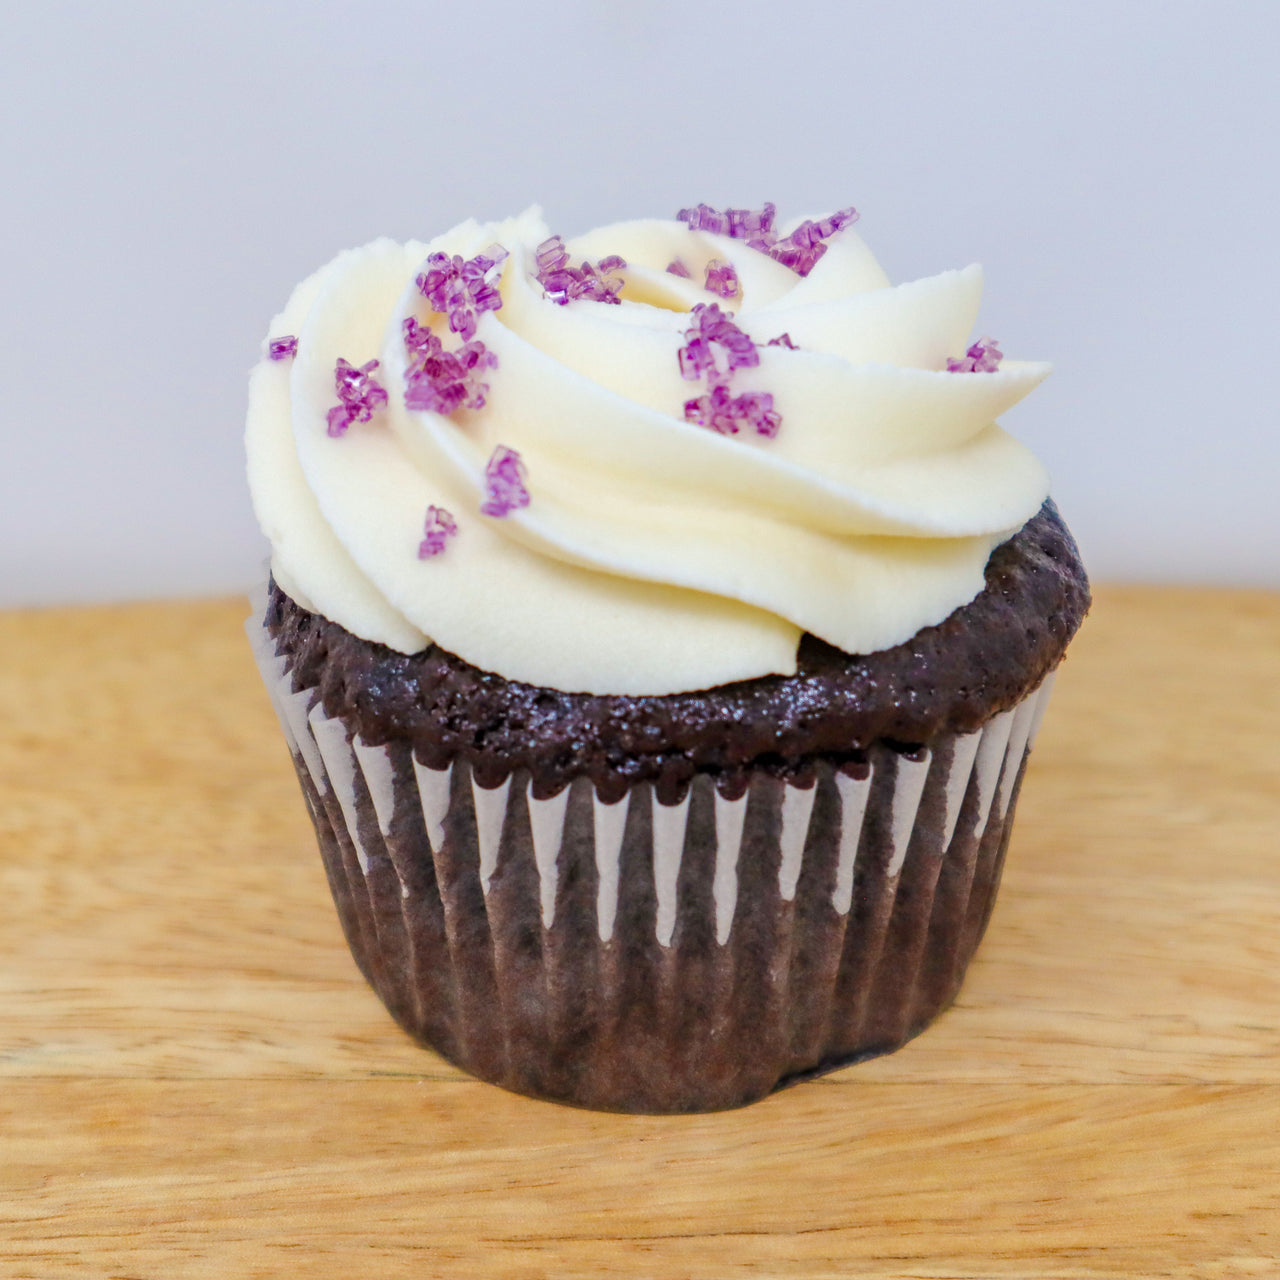 Vegan Chocolate Cupcakes with Vanilla Frosting